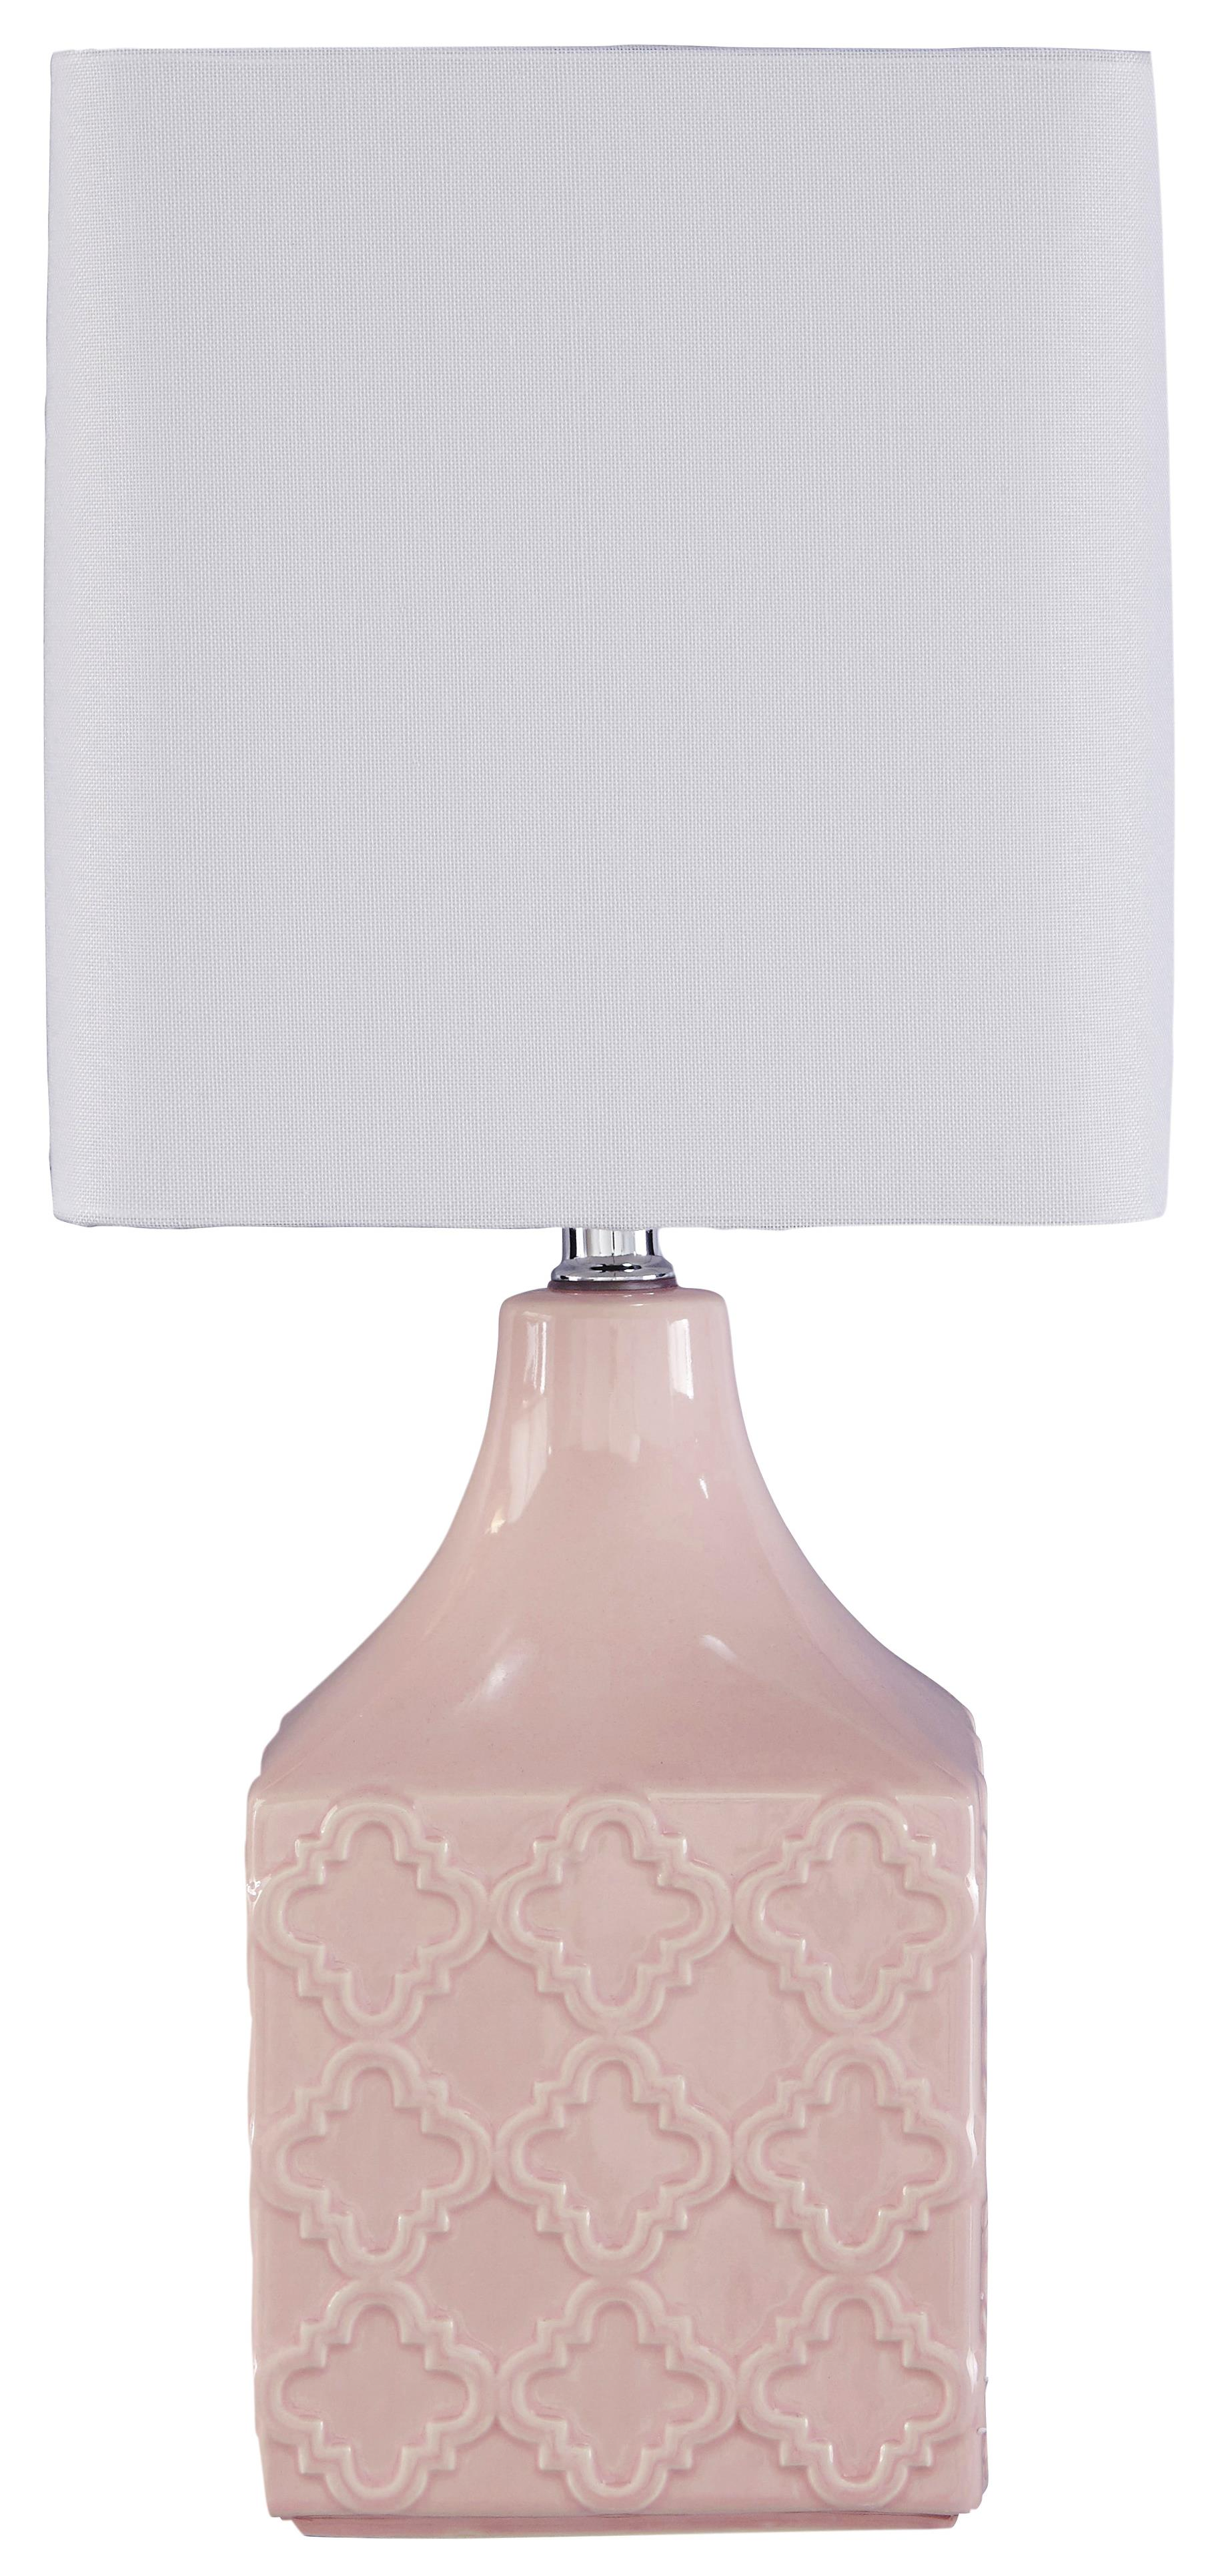 Signature Design by Ashley Lamps - Contemporary Simmone Ceramic Table Lamp - Item Number: L857454